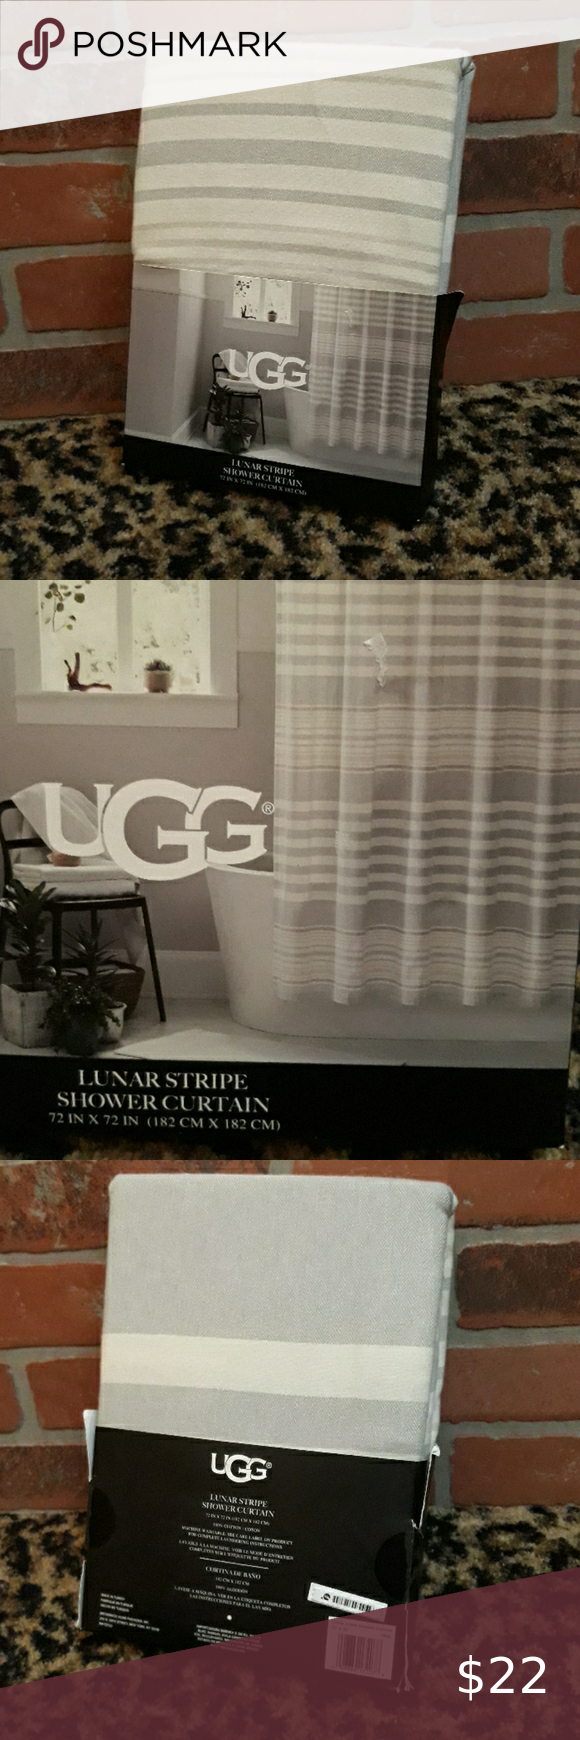 Ugg Lunar Stripe Shower Curtain Seal Gray New Nwt In 2020 With